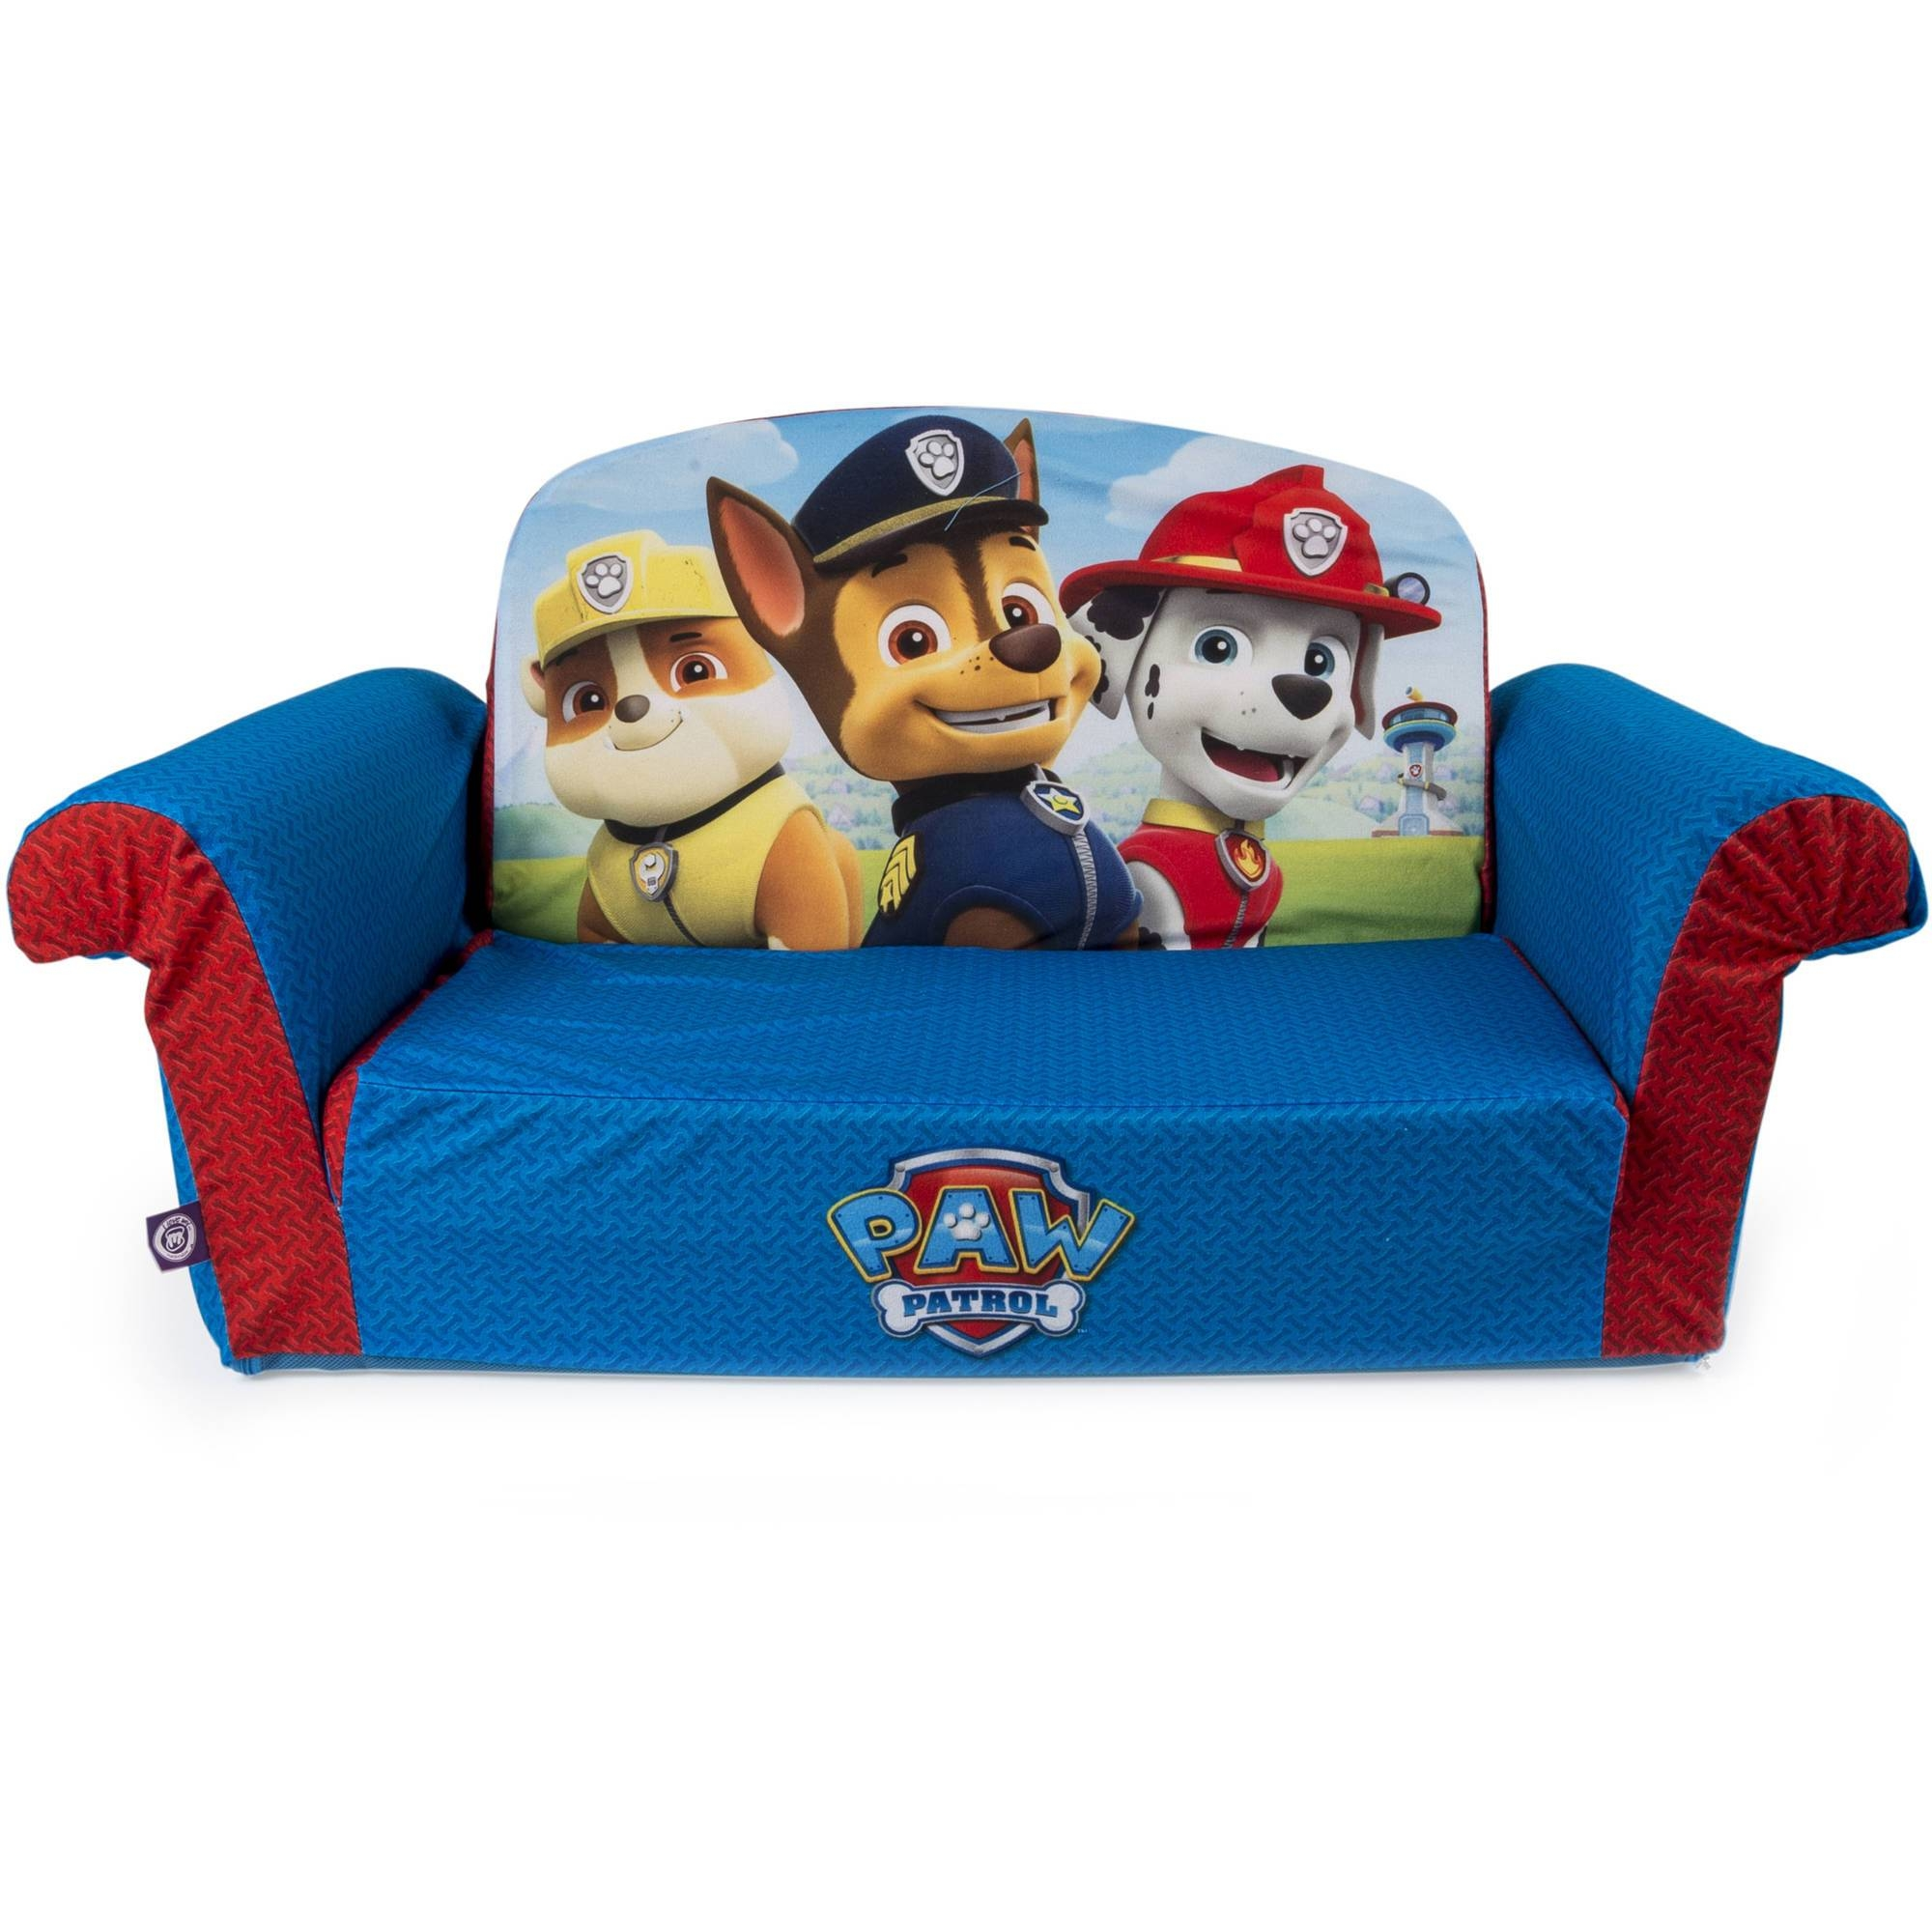 Marshmallow Furniture, Children's 2 In 1 Flip Open Foam Sofa within Kid Flip Open Sofa Beds (Image 11 of 15)